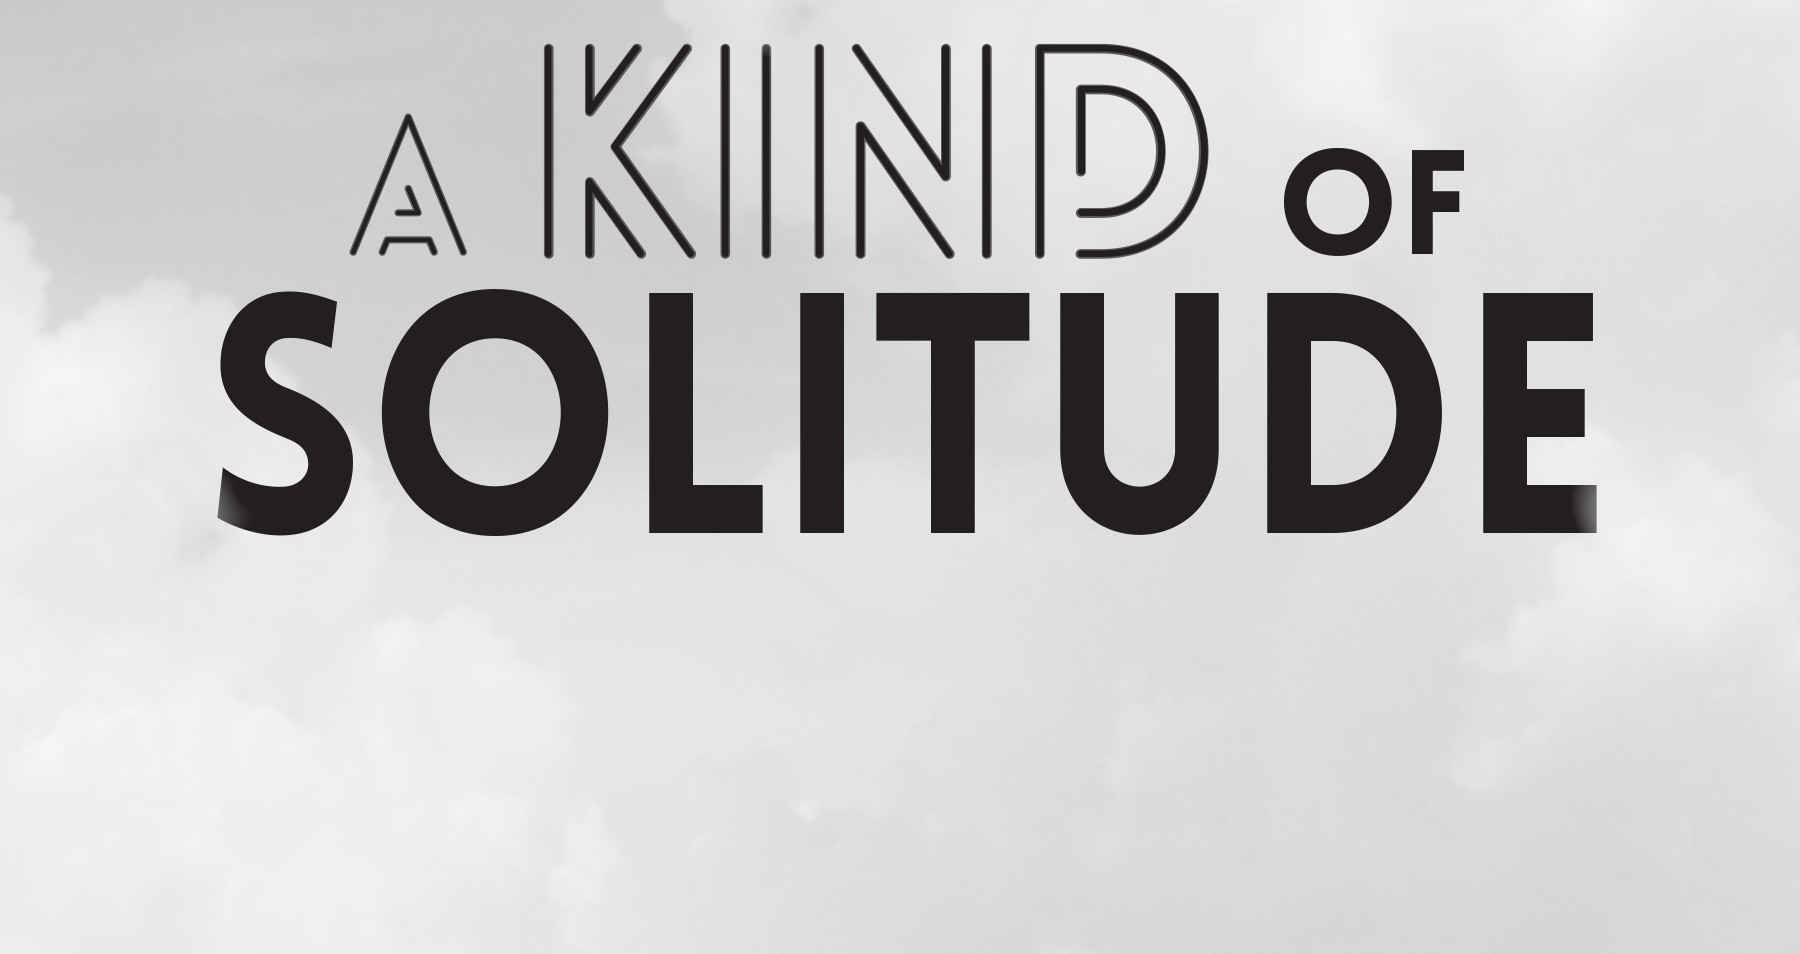 A KIND OF SOLITUDE